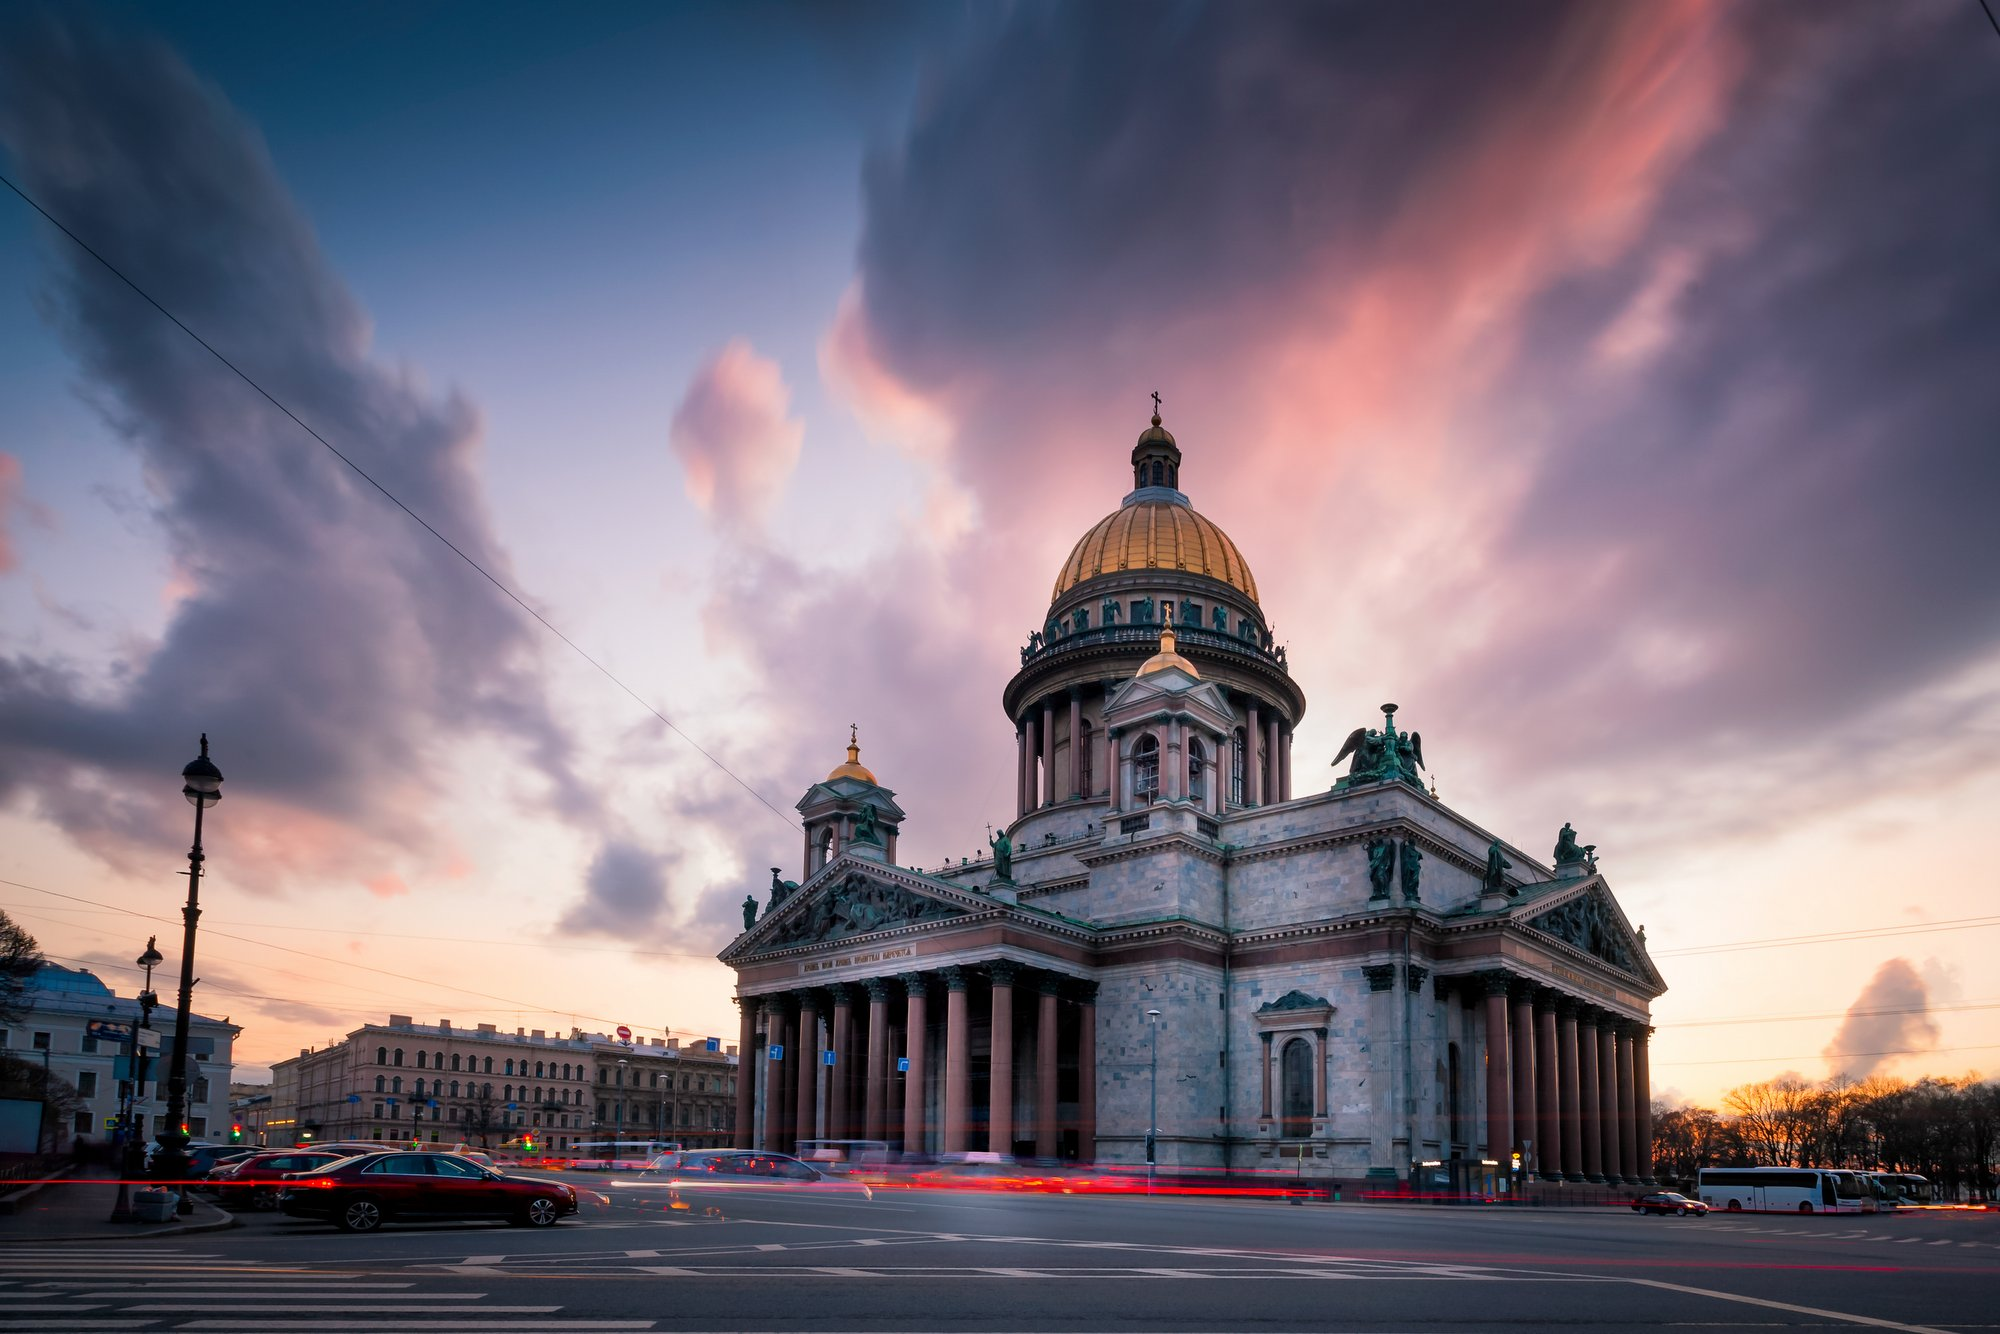 Filming in Russia: Cities With Million-Plus Population